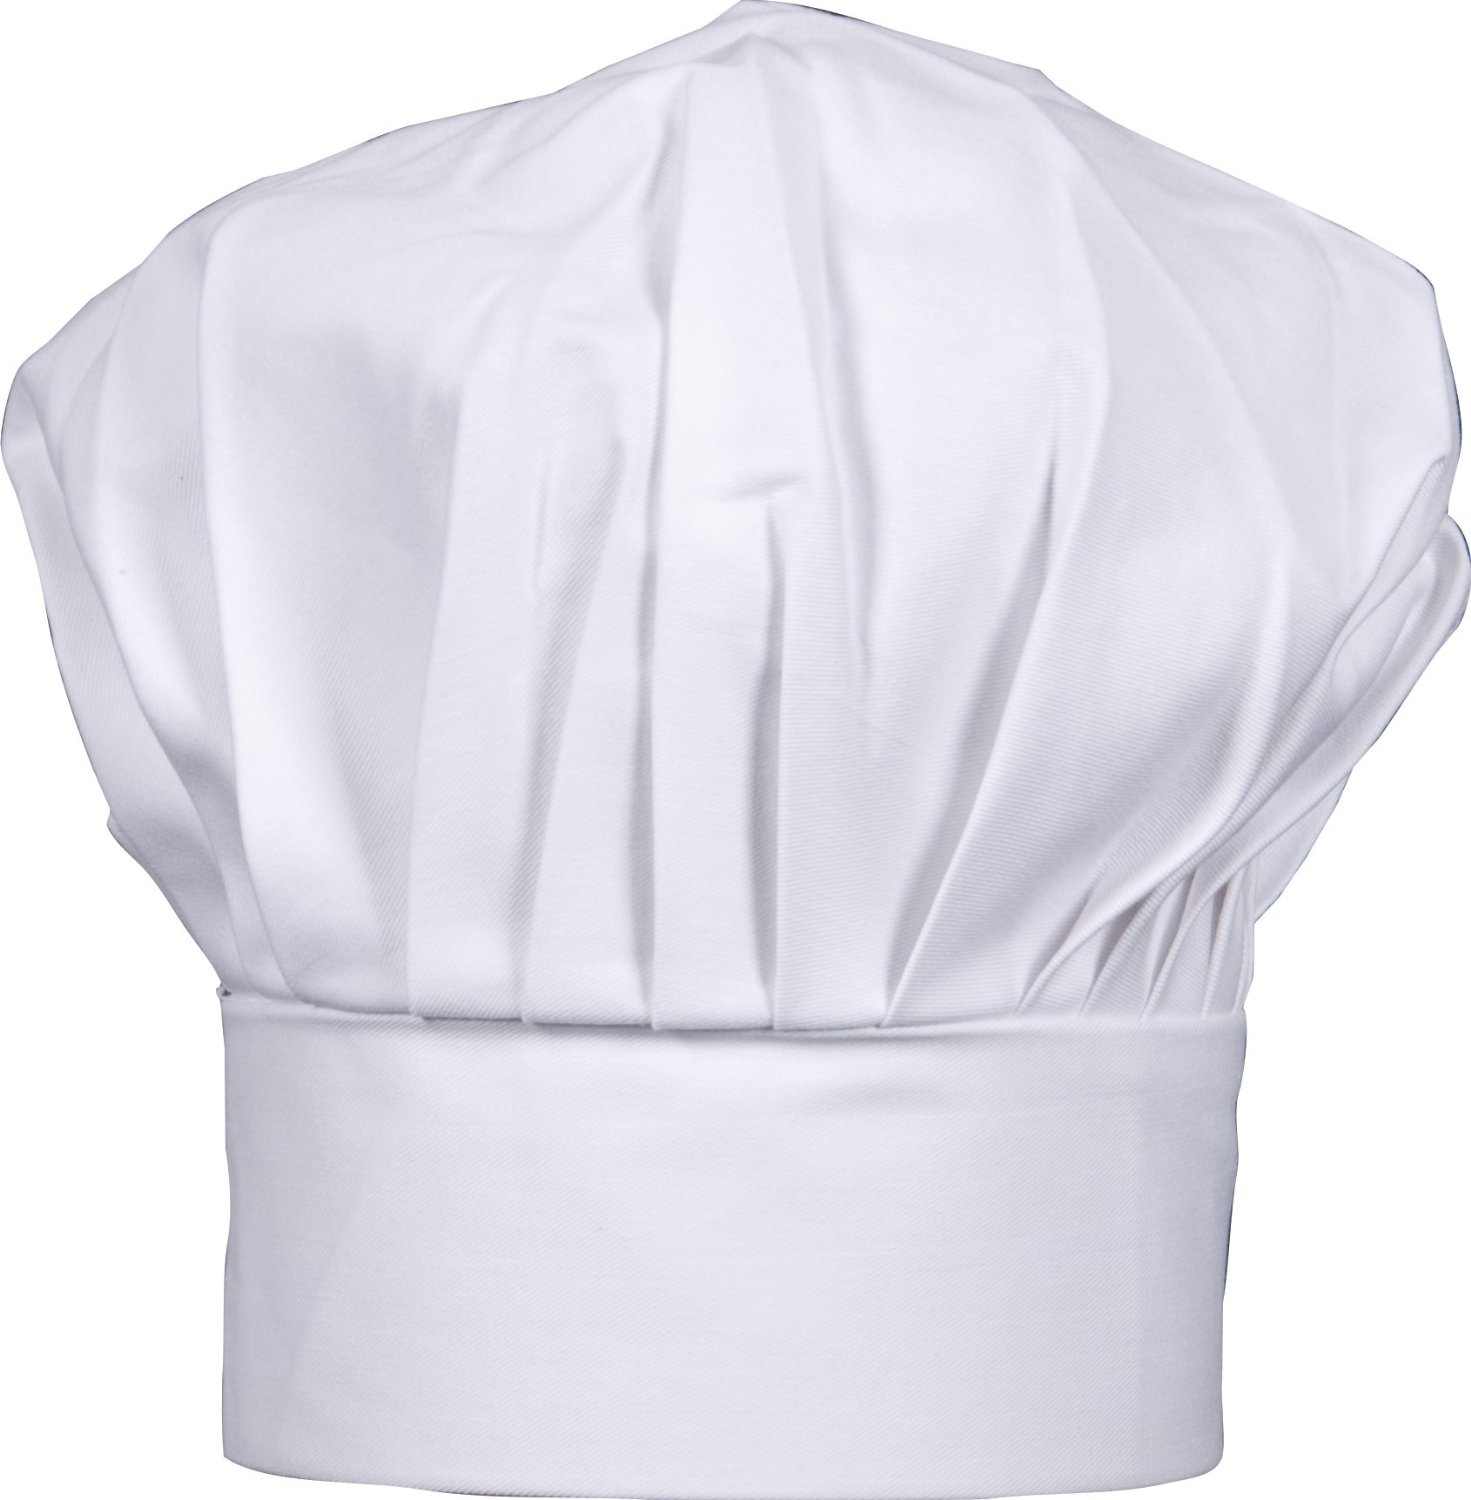 hight resolution of hic adult size adjustable chef hat kitchen linens